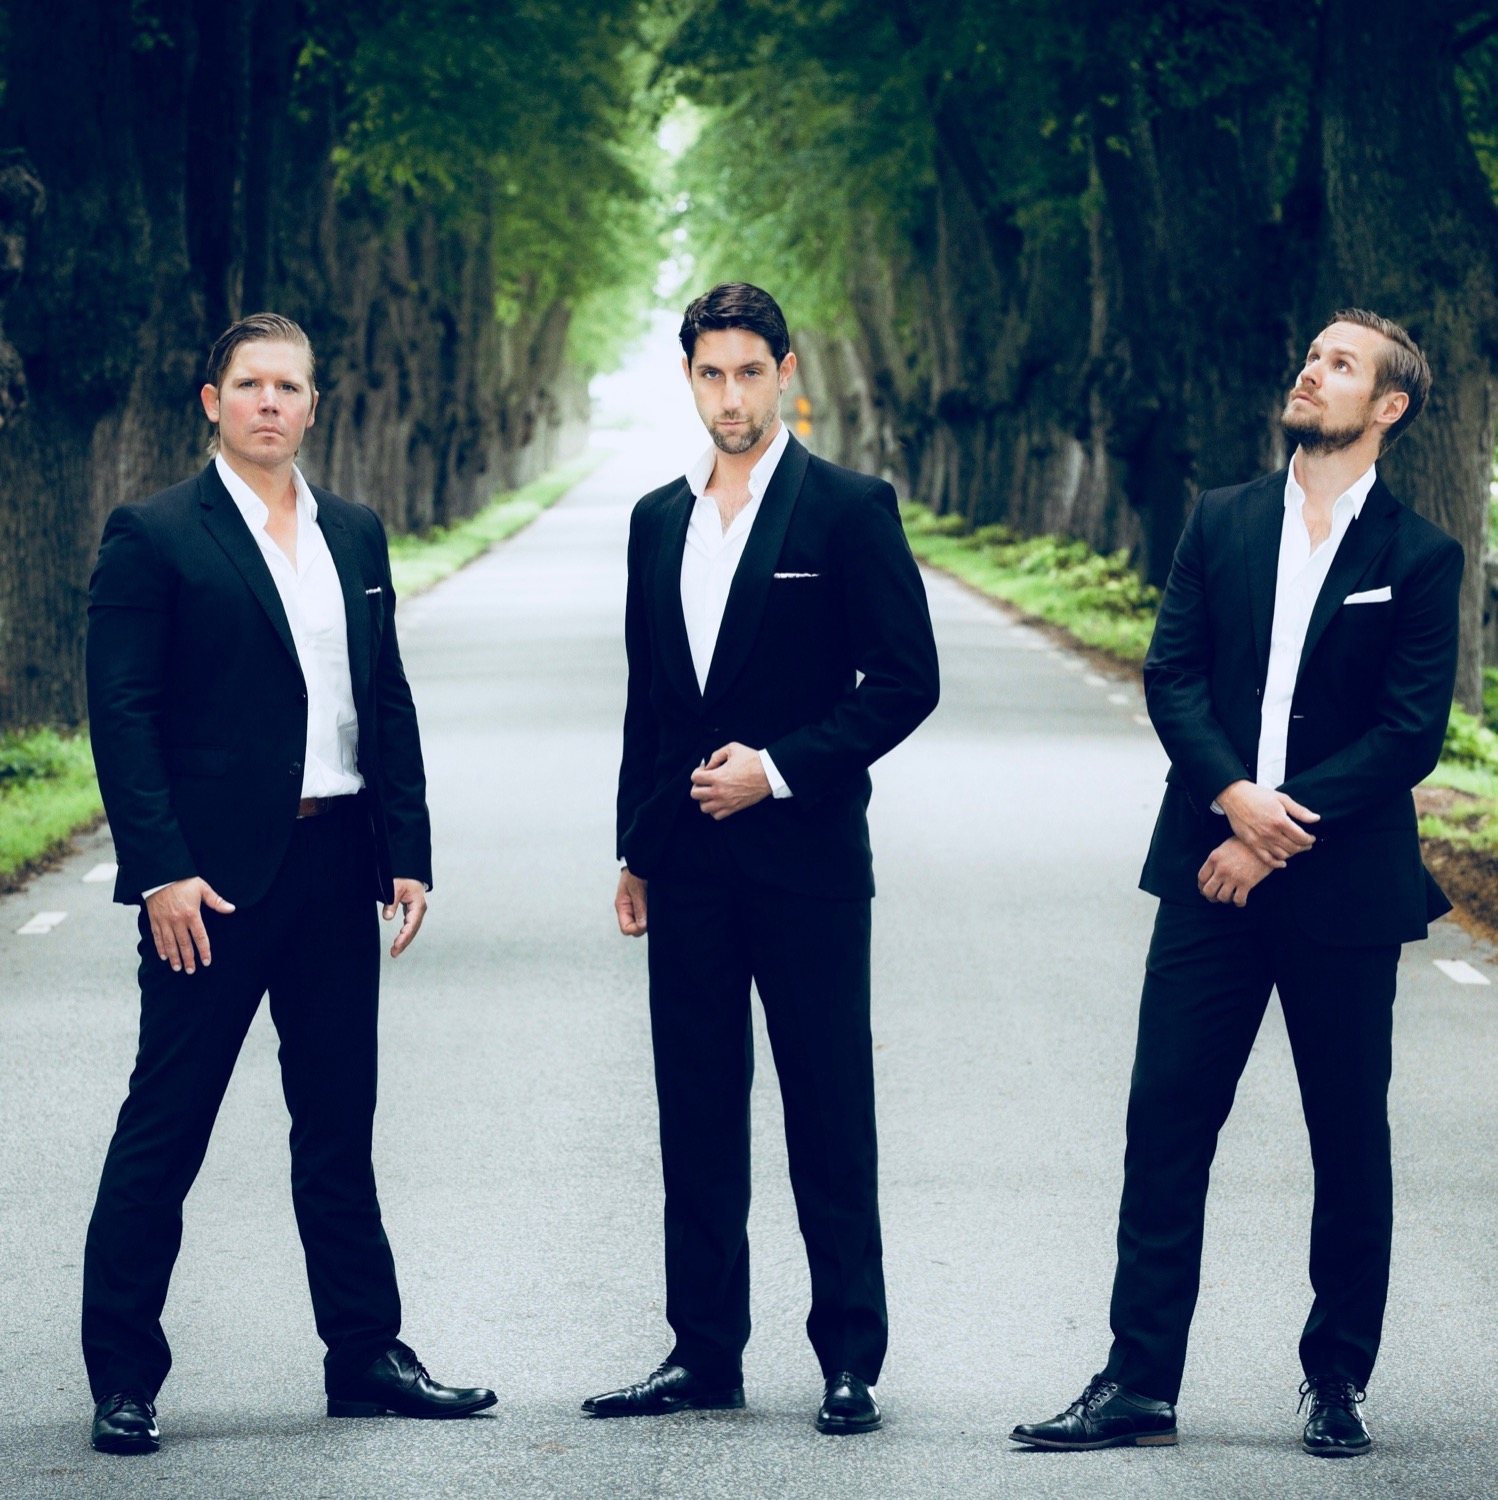 Promo Tenori (3 Tenors)  London